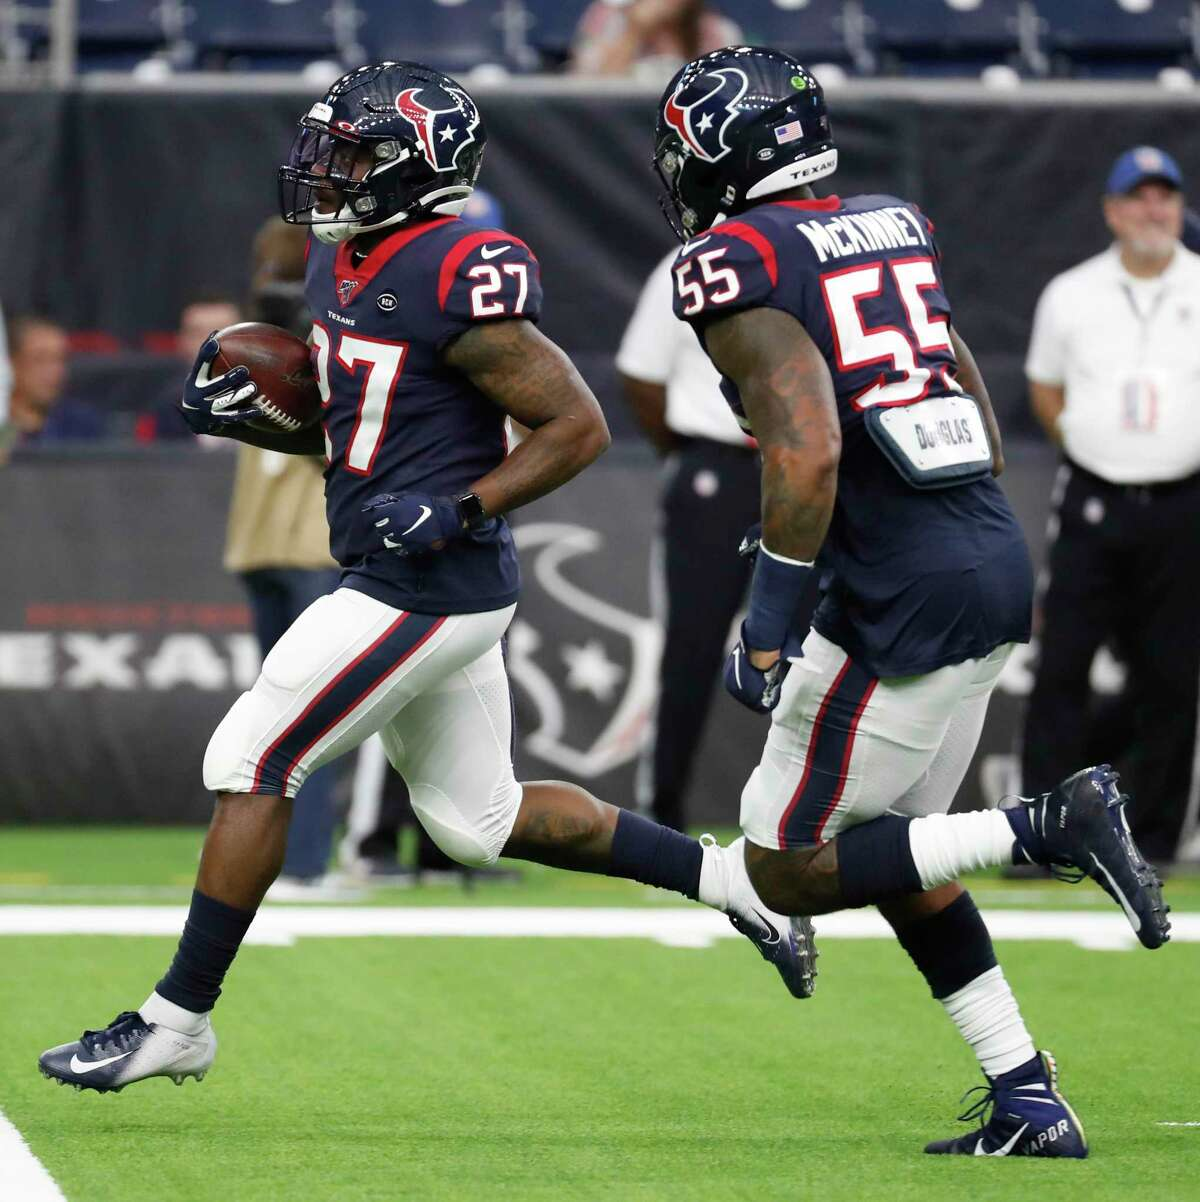 The Texans' loss has become Duke Johnson's gain as he becomes the featured back with Lamar Miller out.